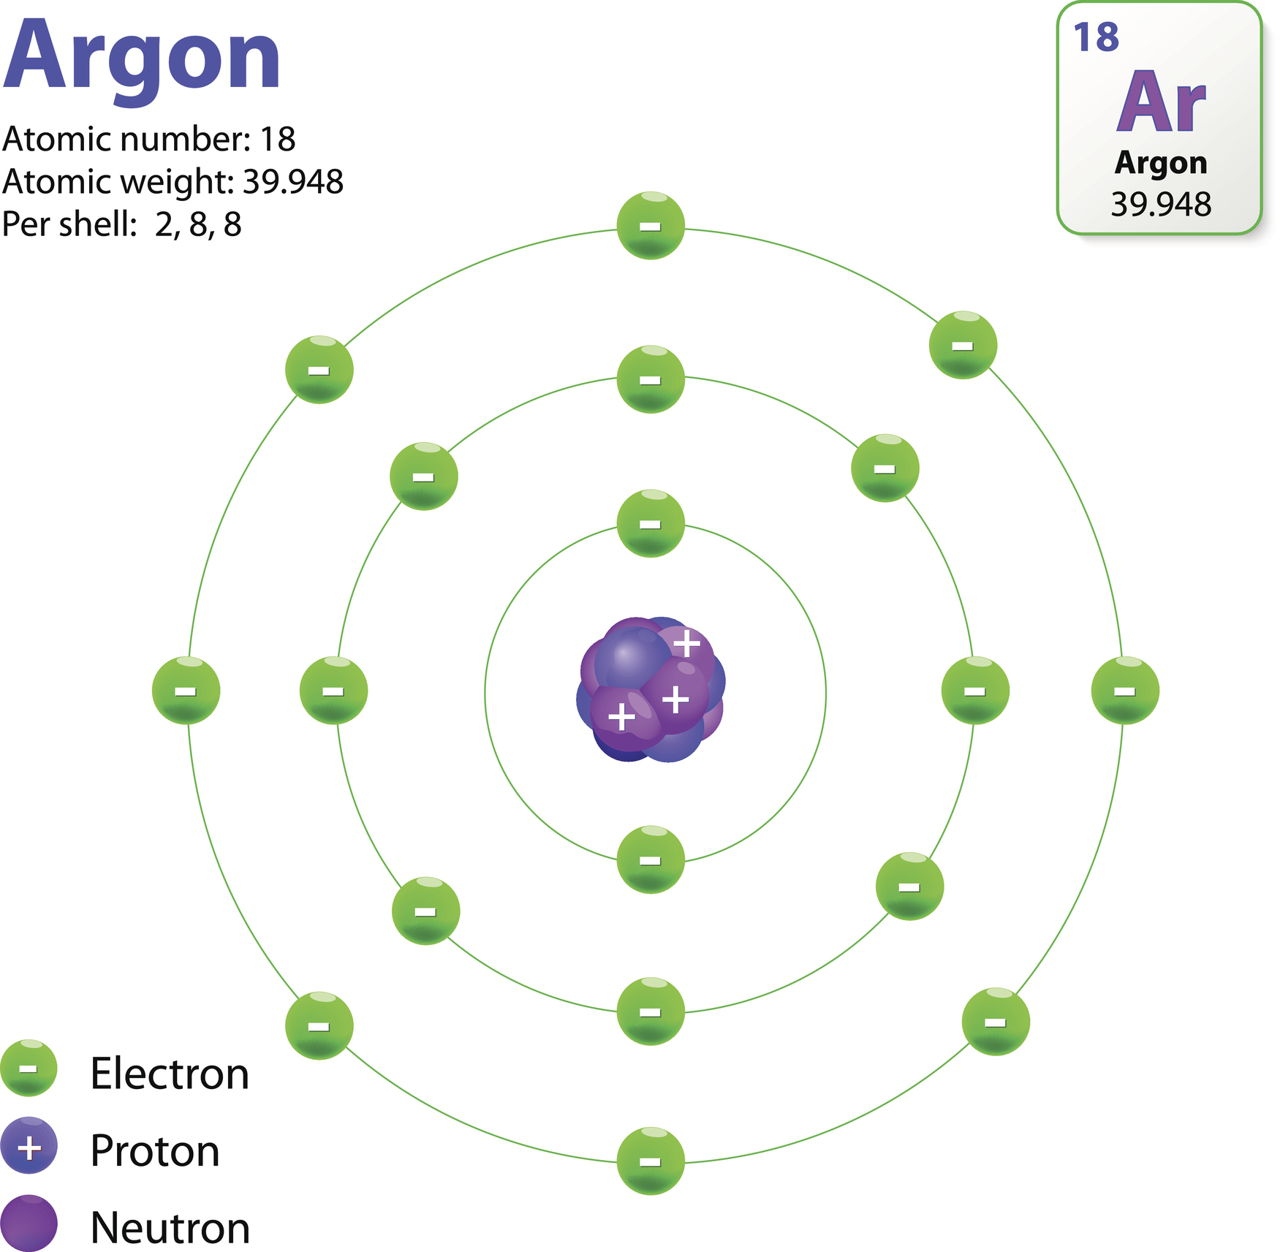 Diagram Of An Atom The Structure Of An Atom Explained With A Labeled Diagram